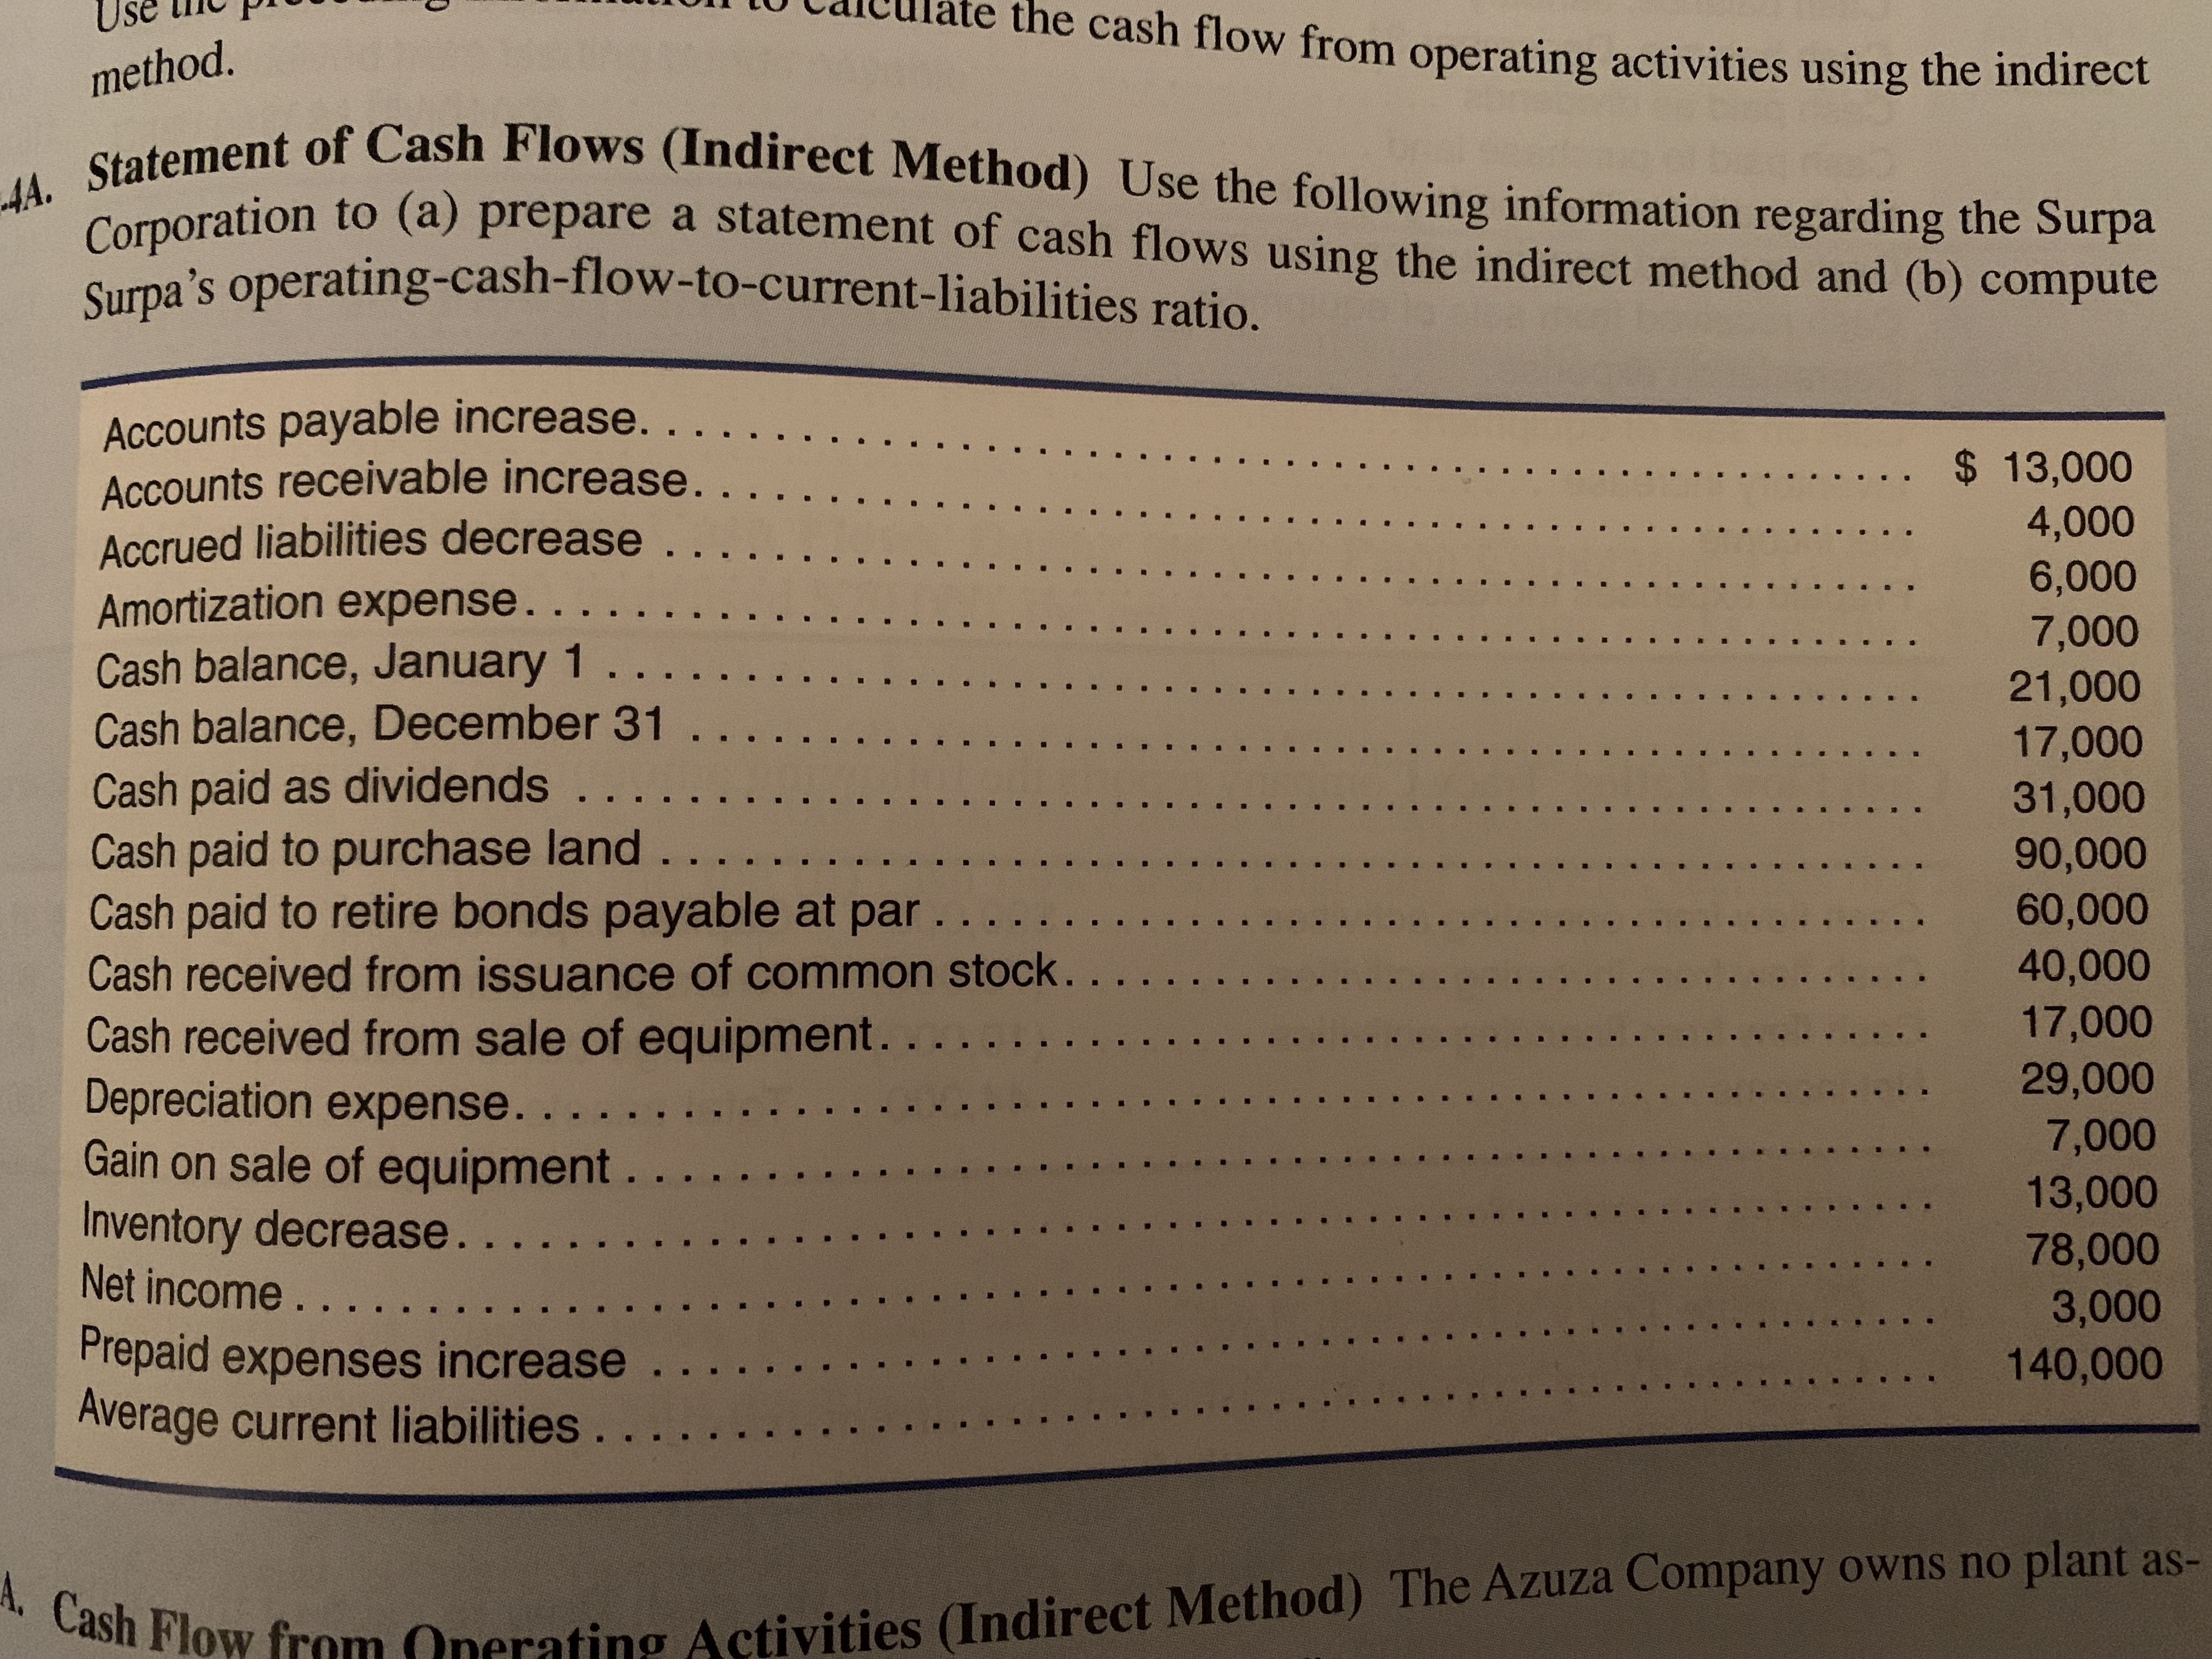 Use ulate the cash flow from operating activities using the indirect method. AA. Statement of Cash Flows (Indirect Method) Use the following information regarding the Surpa Corporation to (a) prepare a statement of cash flows using the indirect method and (b) compute Surpa's operating-cash-flow -to-current-liabilities ratio. Accounts payable increase. . Accounts receivable increase. . . Accrued liabilities decrease . .. Amortization expense. . Cash balance, January 1.. . Cash balance, December 31.. Cash paid as dividends ... Cash paid to purchase land . .. Cash paid to retire bonds payable at par. . Cash received from issuance of common stock... Cash received from sale of equipment . .. Depreciation expense. .. Gain on sale of equipment . . .. Inventory decrease. . . Net income. . .. am . . . $ 13,000 .. 4,000 6,000 7,000 21,000 17,000 31,000 90,000 60,000 40,000 17,000 29,000 7,000 13,000 78,000 3,000 140,000 Prepaid expenses increase ... Average current liabilities. .. A. Cash Flow Activities (Indirect Method) The Azuza Company owns no plant as-